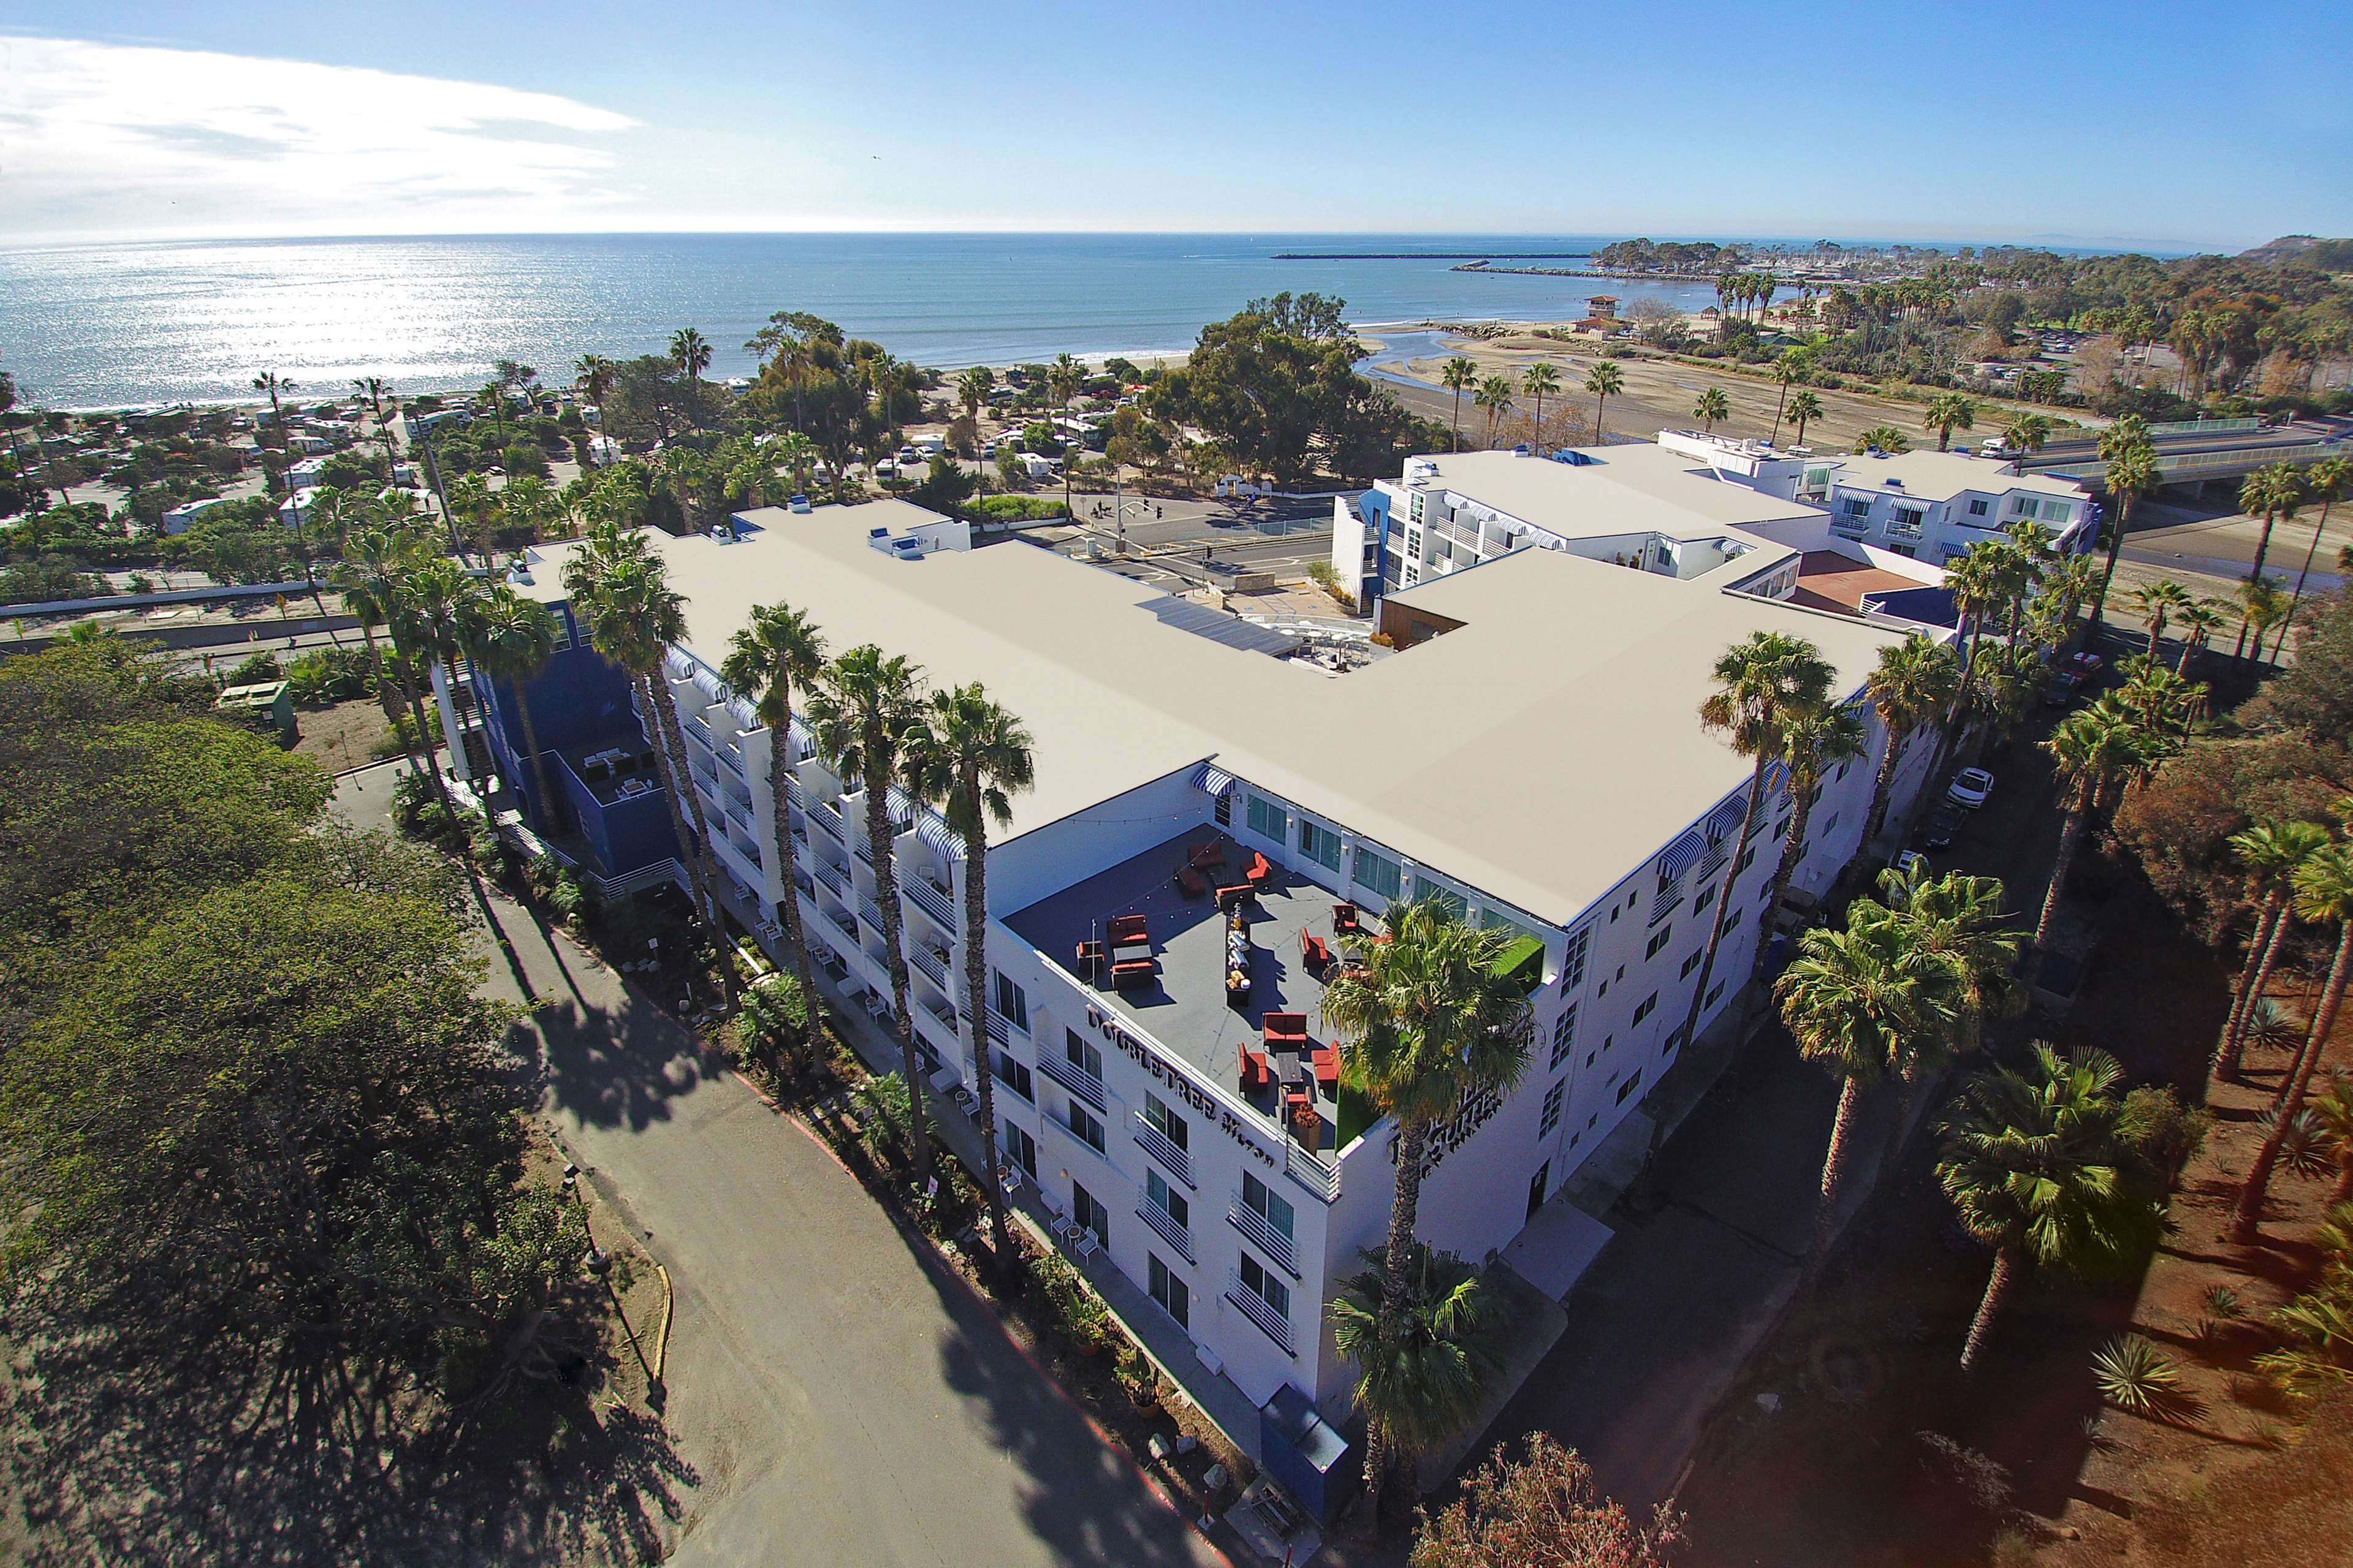 DoubleTree Suites by Hilton Hotel Doheny Beach - Dana Point image 3